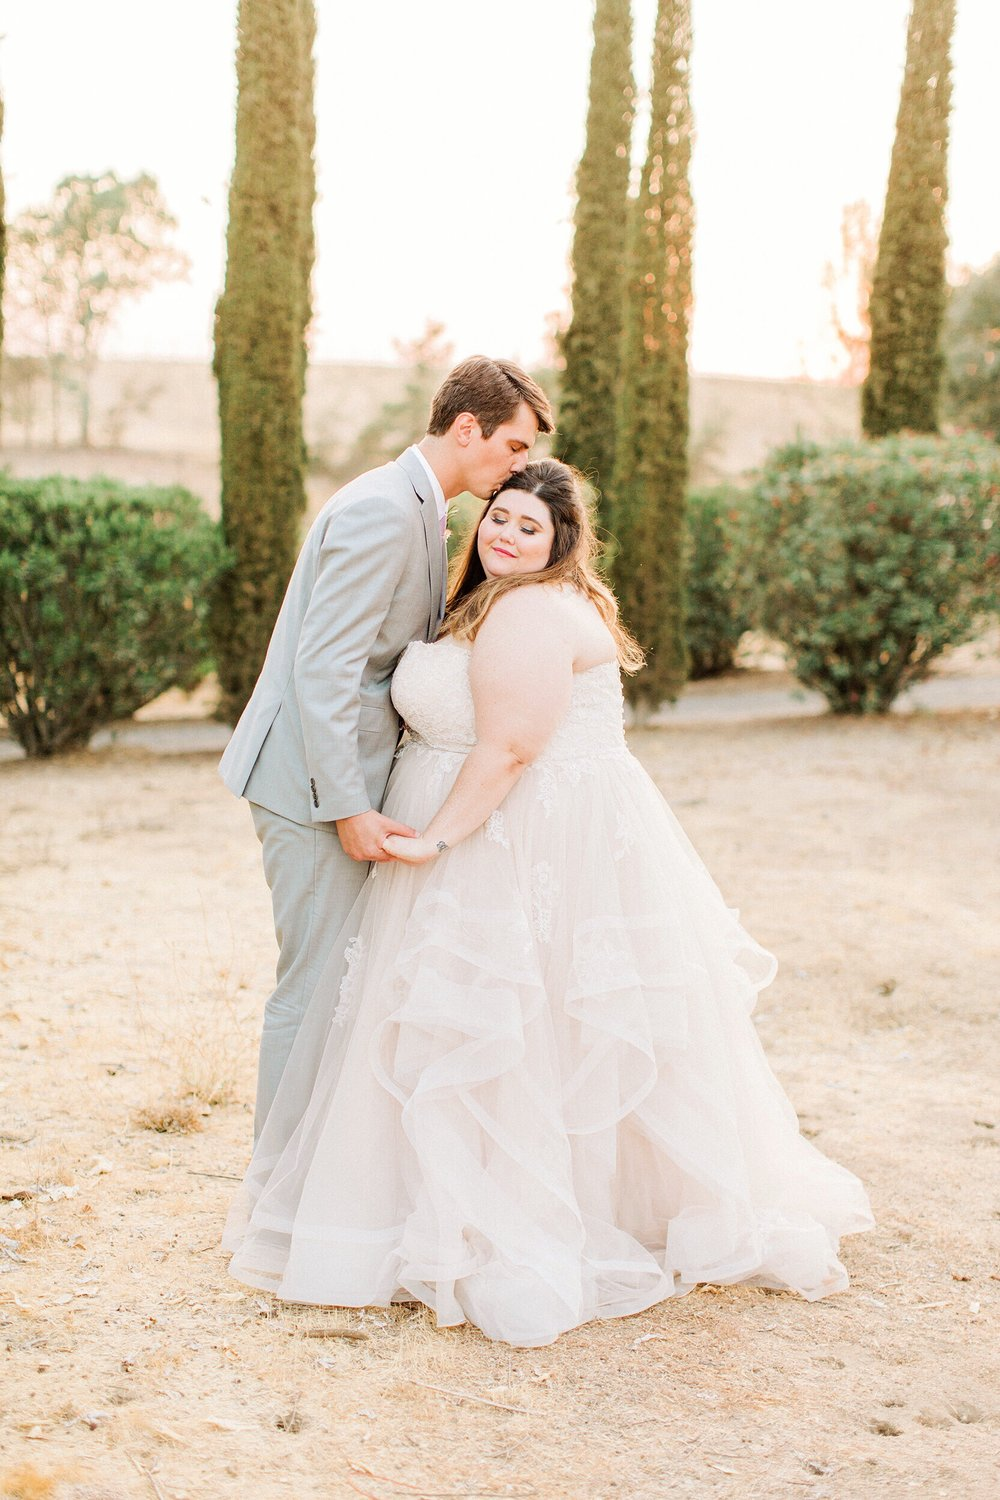 Their first official date was a San Diego adventure, which ended with the newly-minted couple drinking Blue Moons on the beach, toes in the sand, while they watched the sunset over the Pacific. -